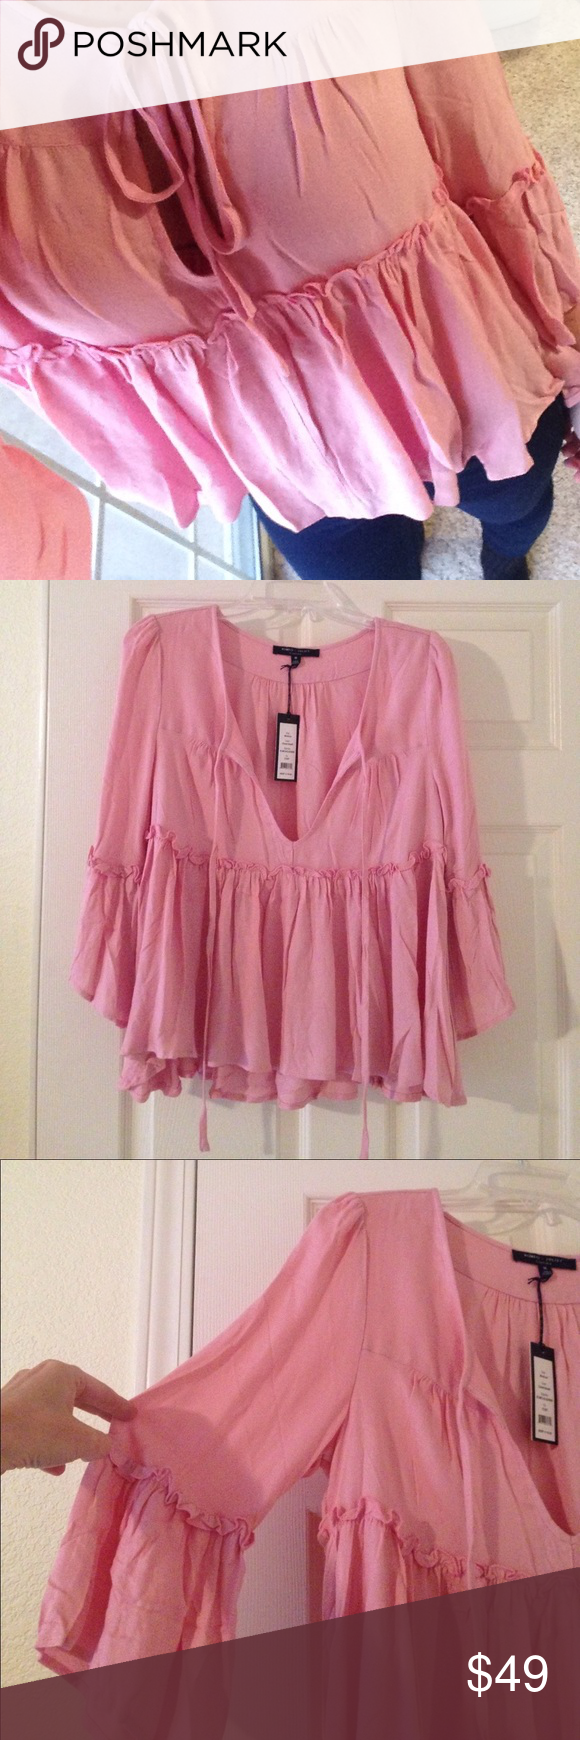 """Romeo + Juliet Couture Bohemian/Bell-sleeve Top Pretty in pink & perfect for pink October! Color is """"coral/blush"""". This top has a boho/chic vibe. Pleated & flowy w/ruffle trim; slight bell sleeves w/ruffle trim; keyhole neck w/ties. Wear it w/flared pants or skinnies & edgy shoes! Super soft. 100% viscose. 23"""" front, 26"""" back, 18"""" sleeves, 19"""" bust. Fit is good, but a little too big at keyhole front on me. There's a TEENY hole at seam near tag where security tag was removed. It's not…"""